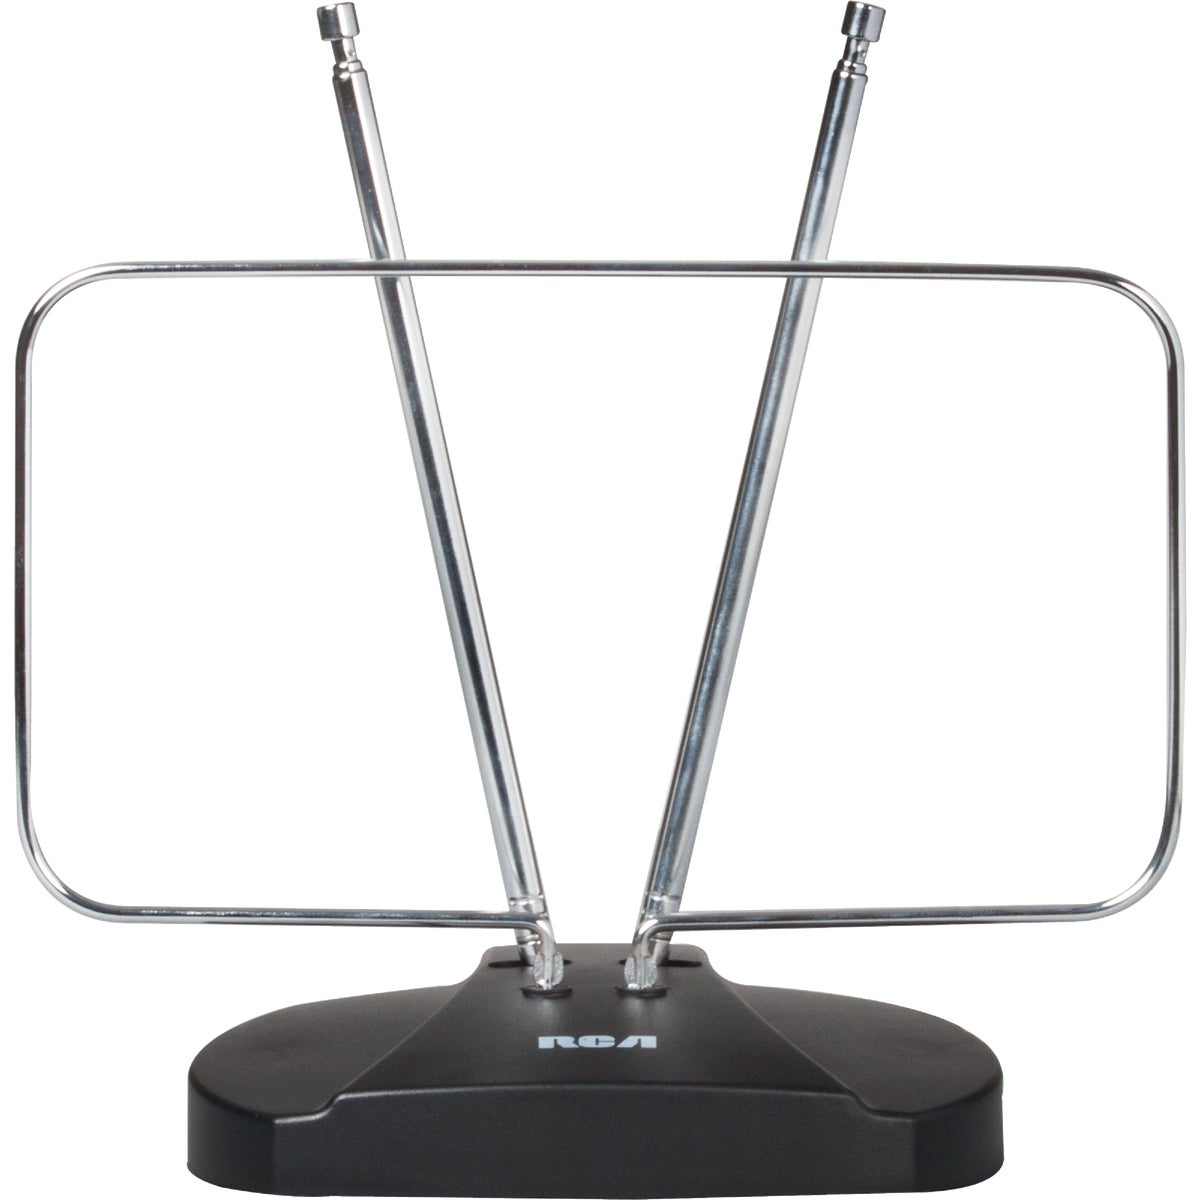 U/V/F/HD INDOOR ANTENNA - ANT111R by Audiovox Accessories